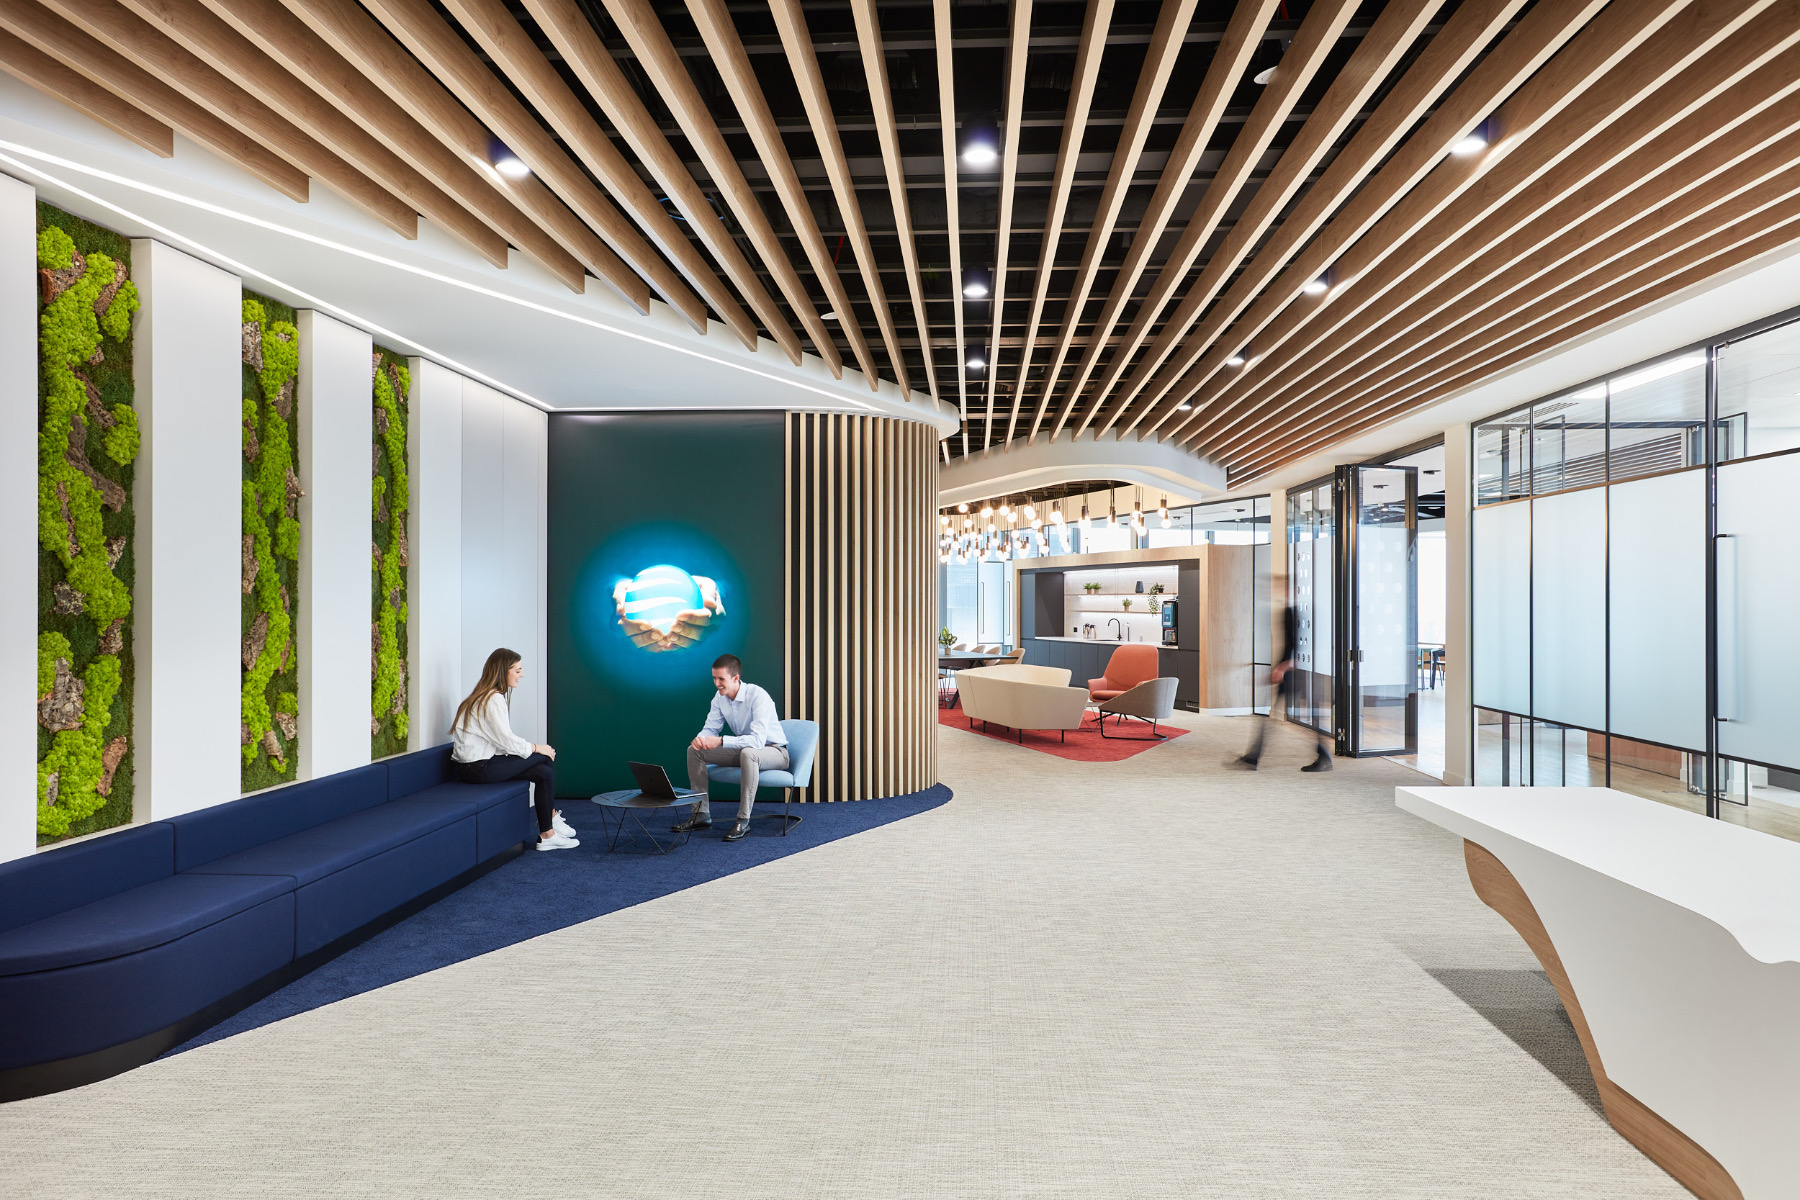 A Tour of Statkraft's Cool New London Office